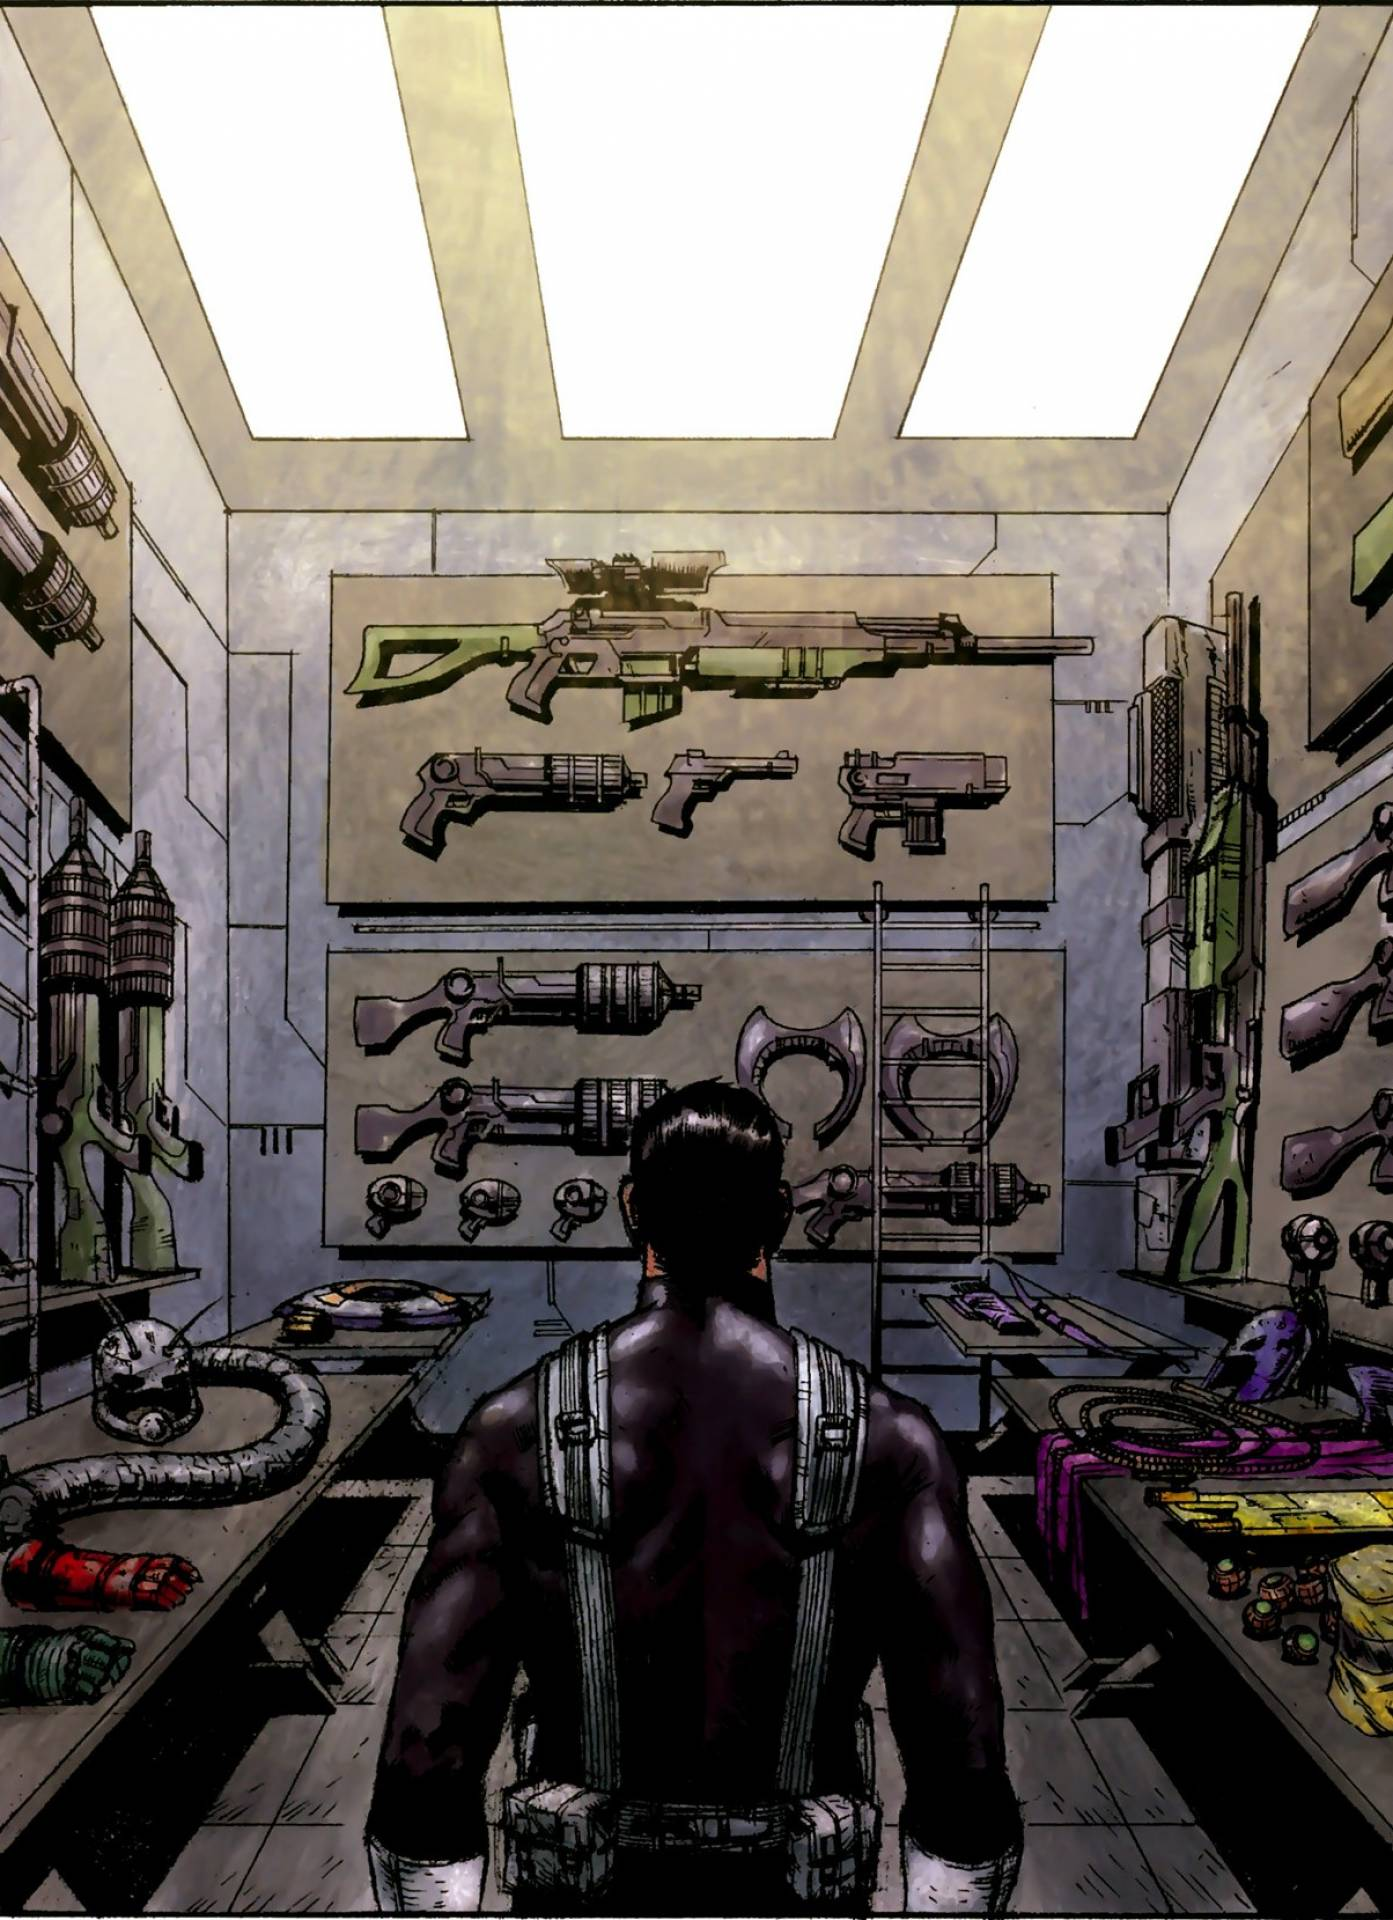 Punisher's Arsenal/Gallery